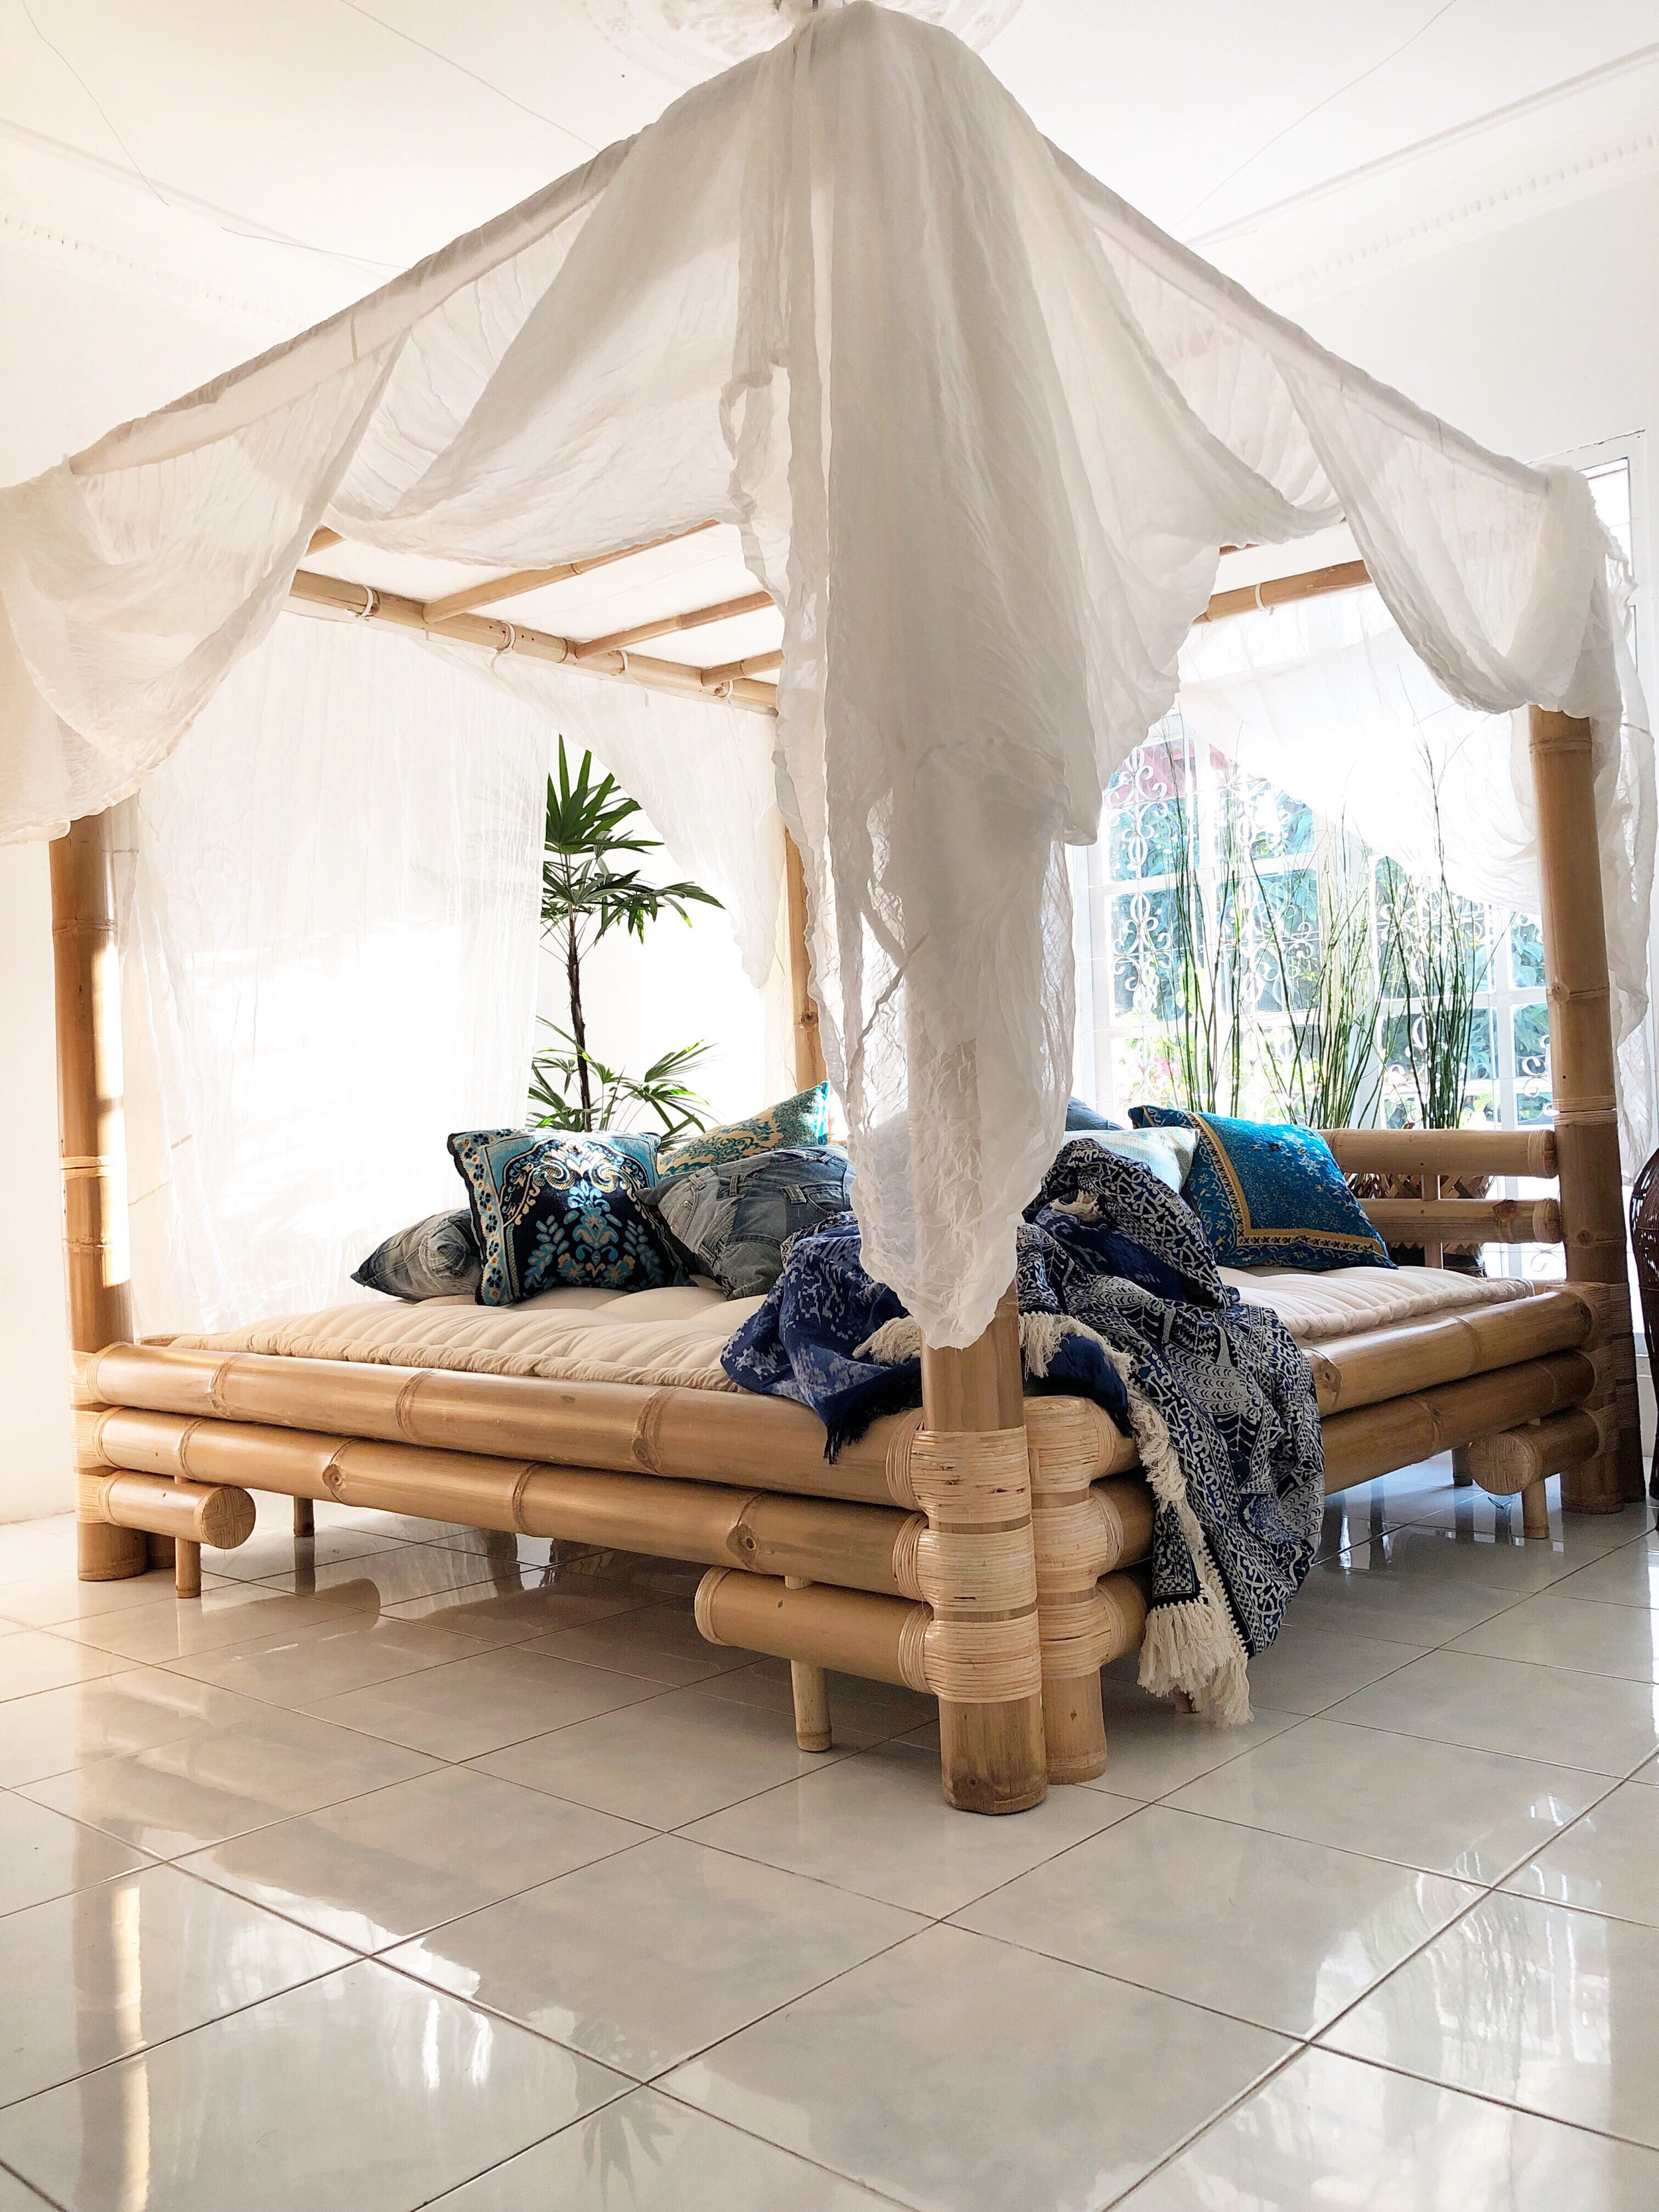 BEDS AND DAYBEDS - SIESTA TIME AND SWEET DREAMS